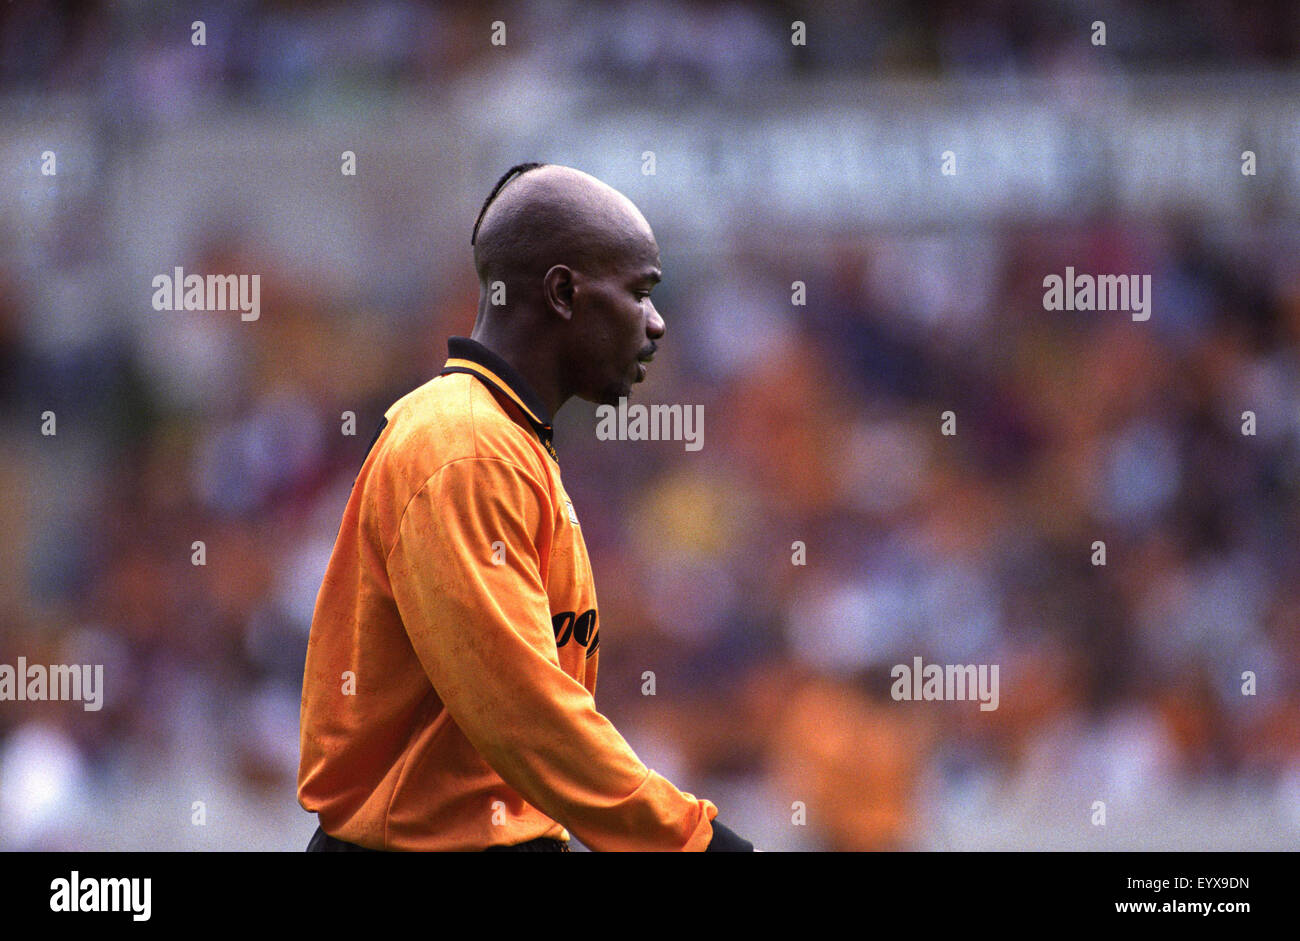 Footballer Tony Daley with unusual hair style 1995 Stock Photo